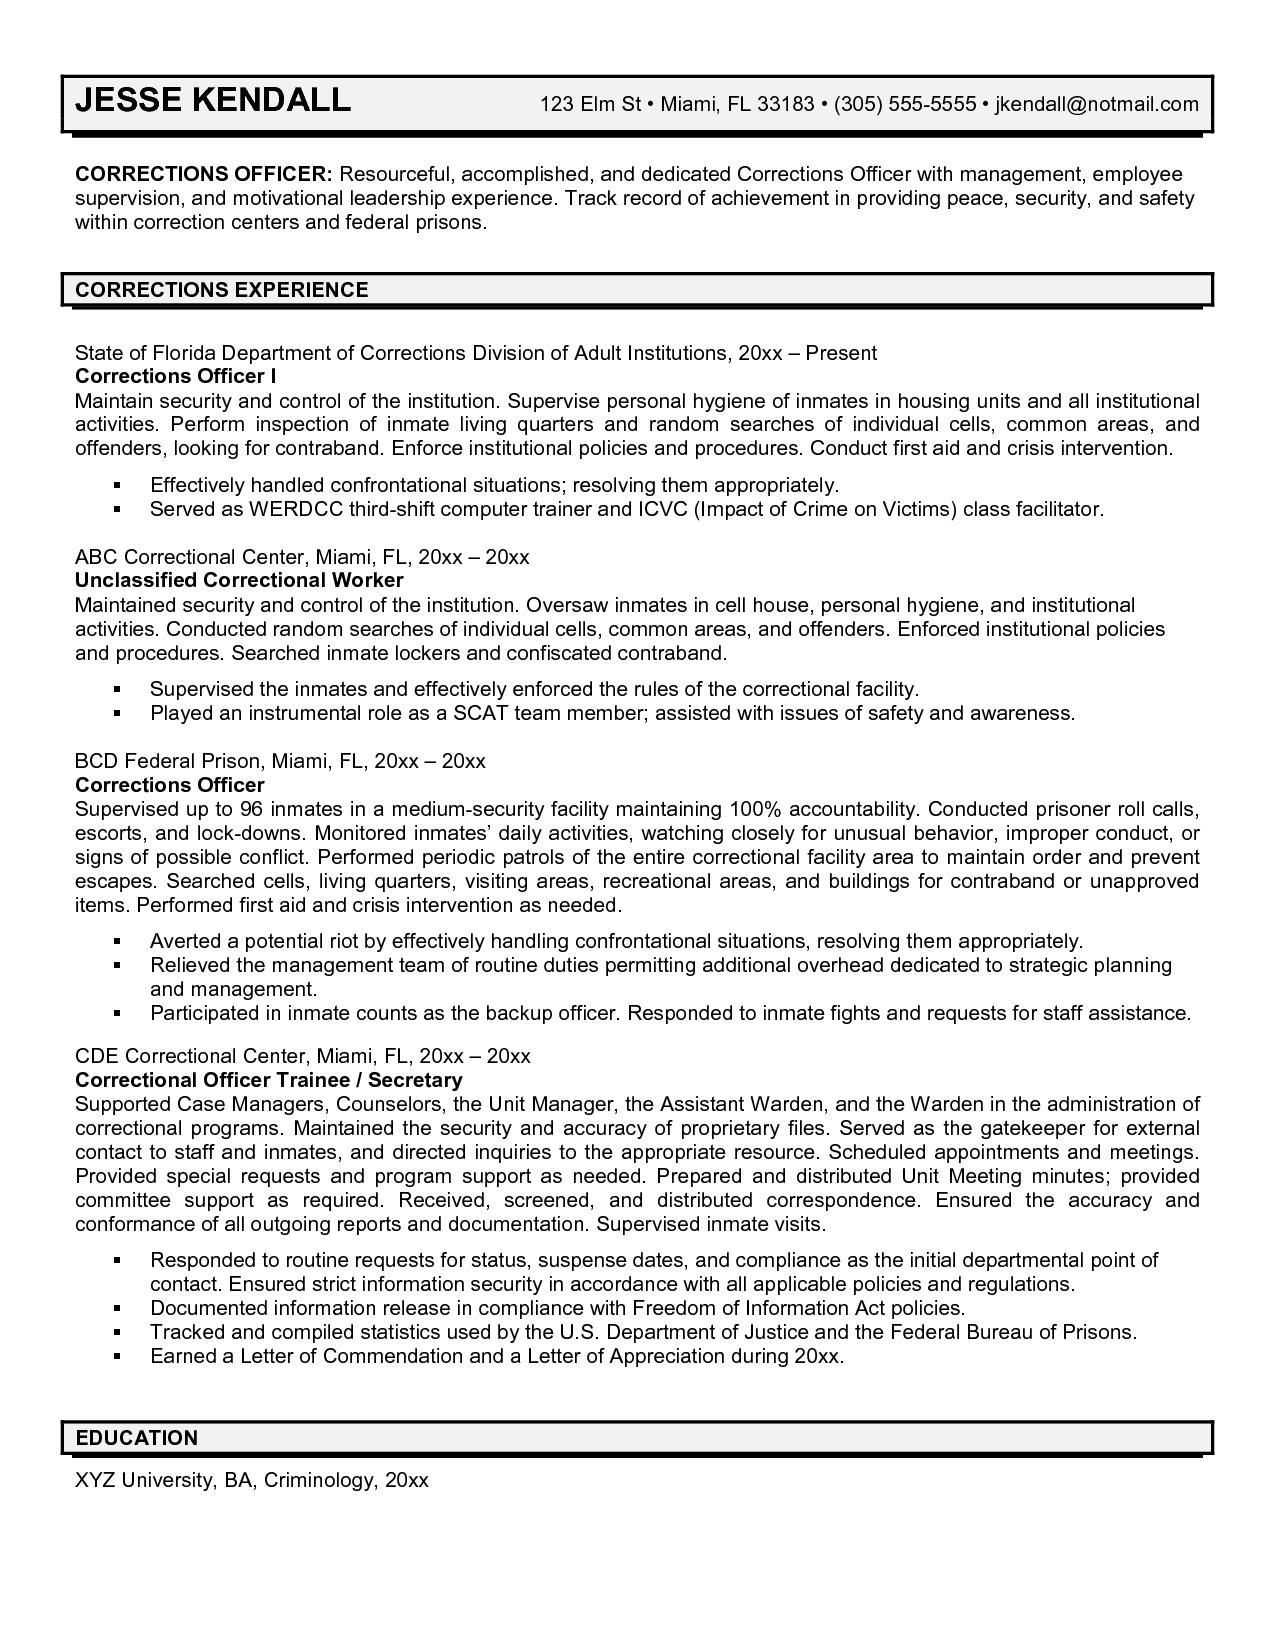 Correctional Officer Resume Samples Http Www Jobresume Website